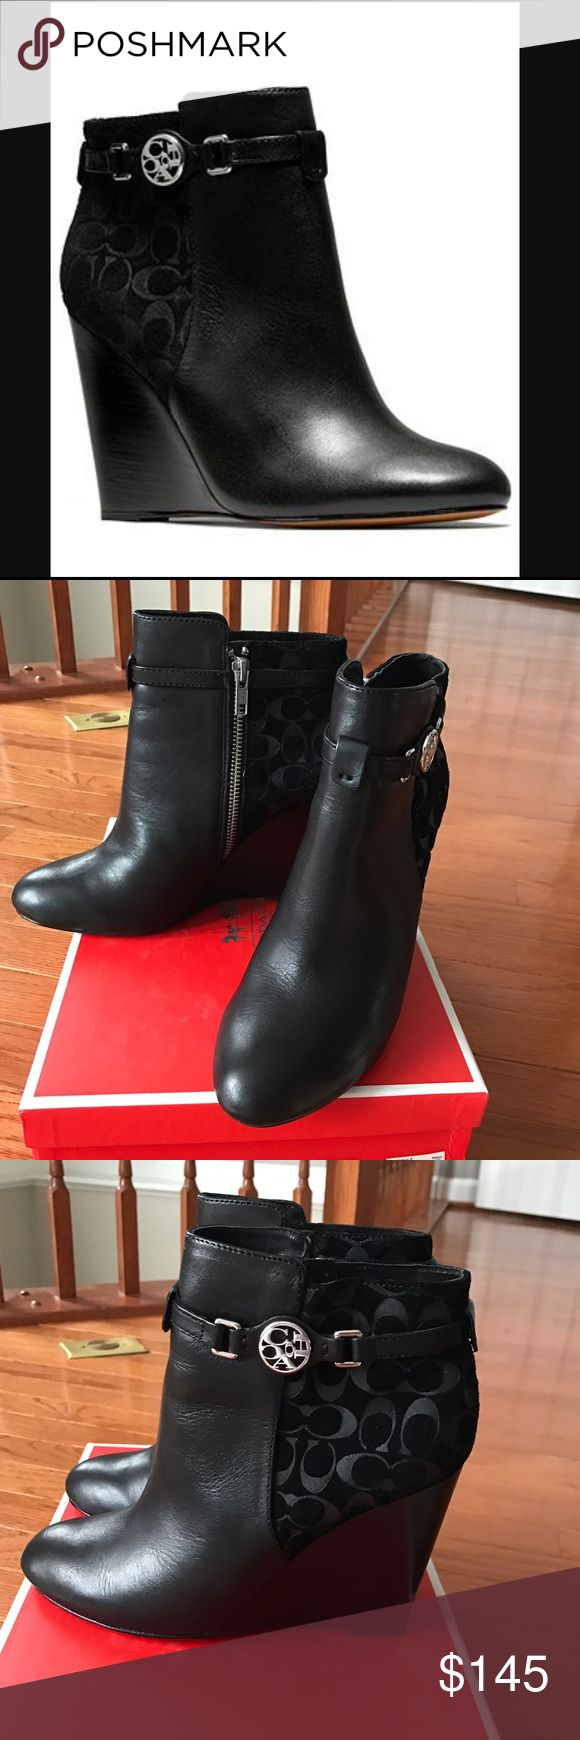 Coach Safira Leather/Suede Wedge Booties Black 7 They're worn only once. They're in excellent condition. Size 7 Coach Shoes Ankle Boots & Booties